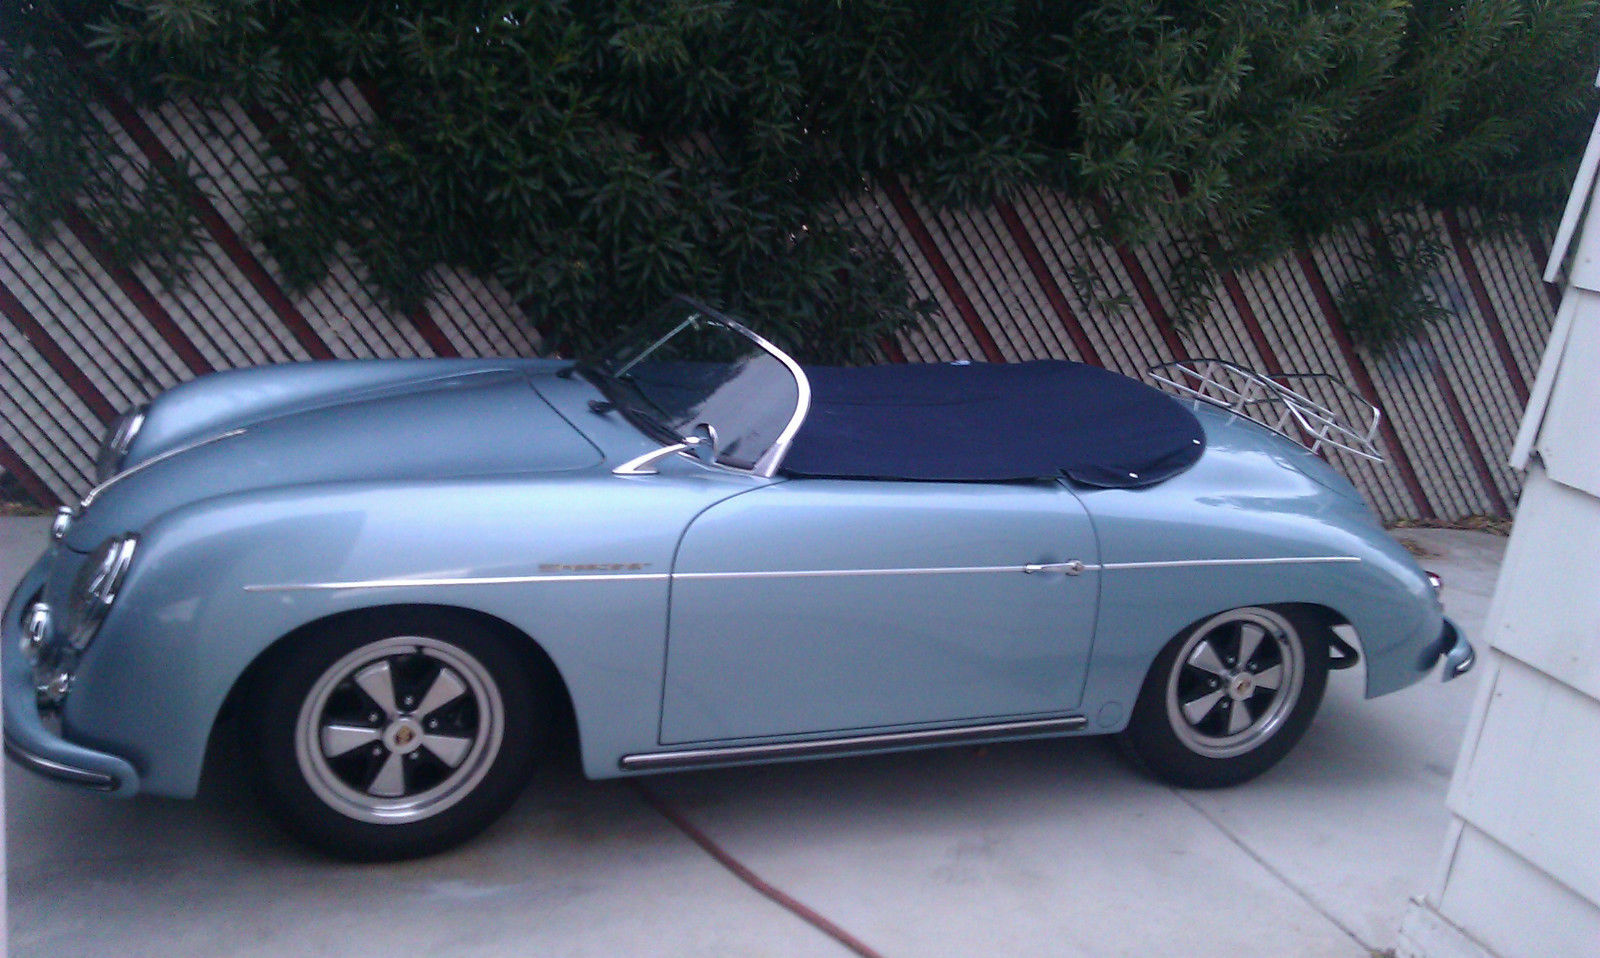 1957 Porsche Speedster Replica Beck Classic Replica Kit